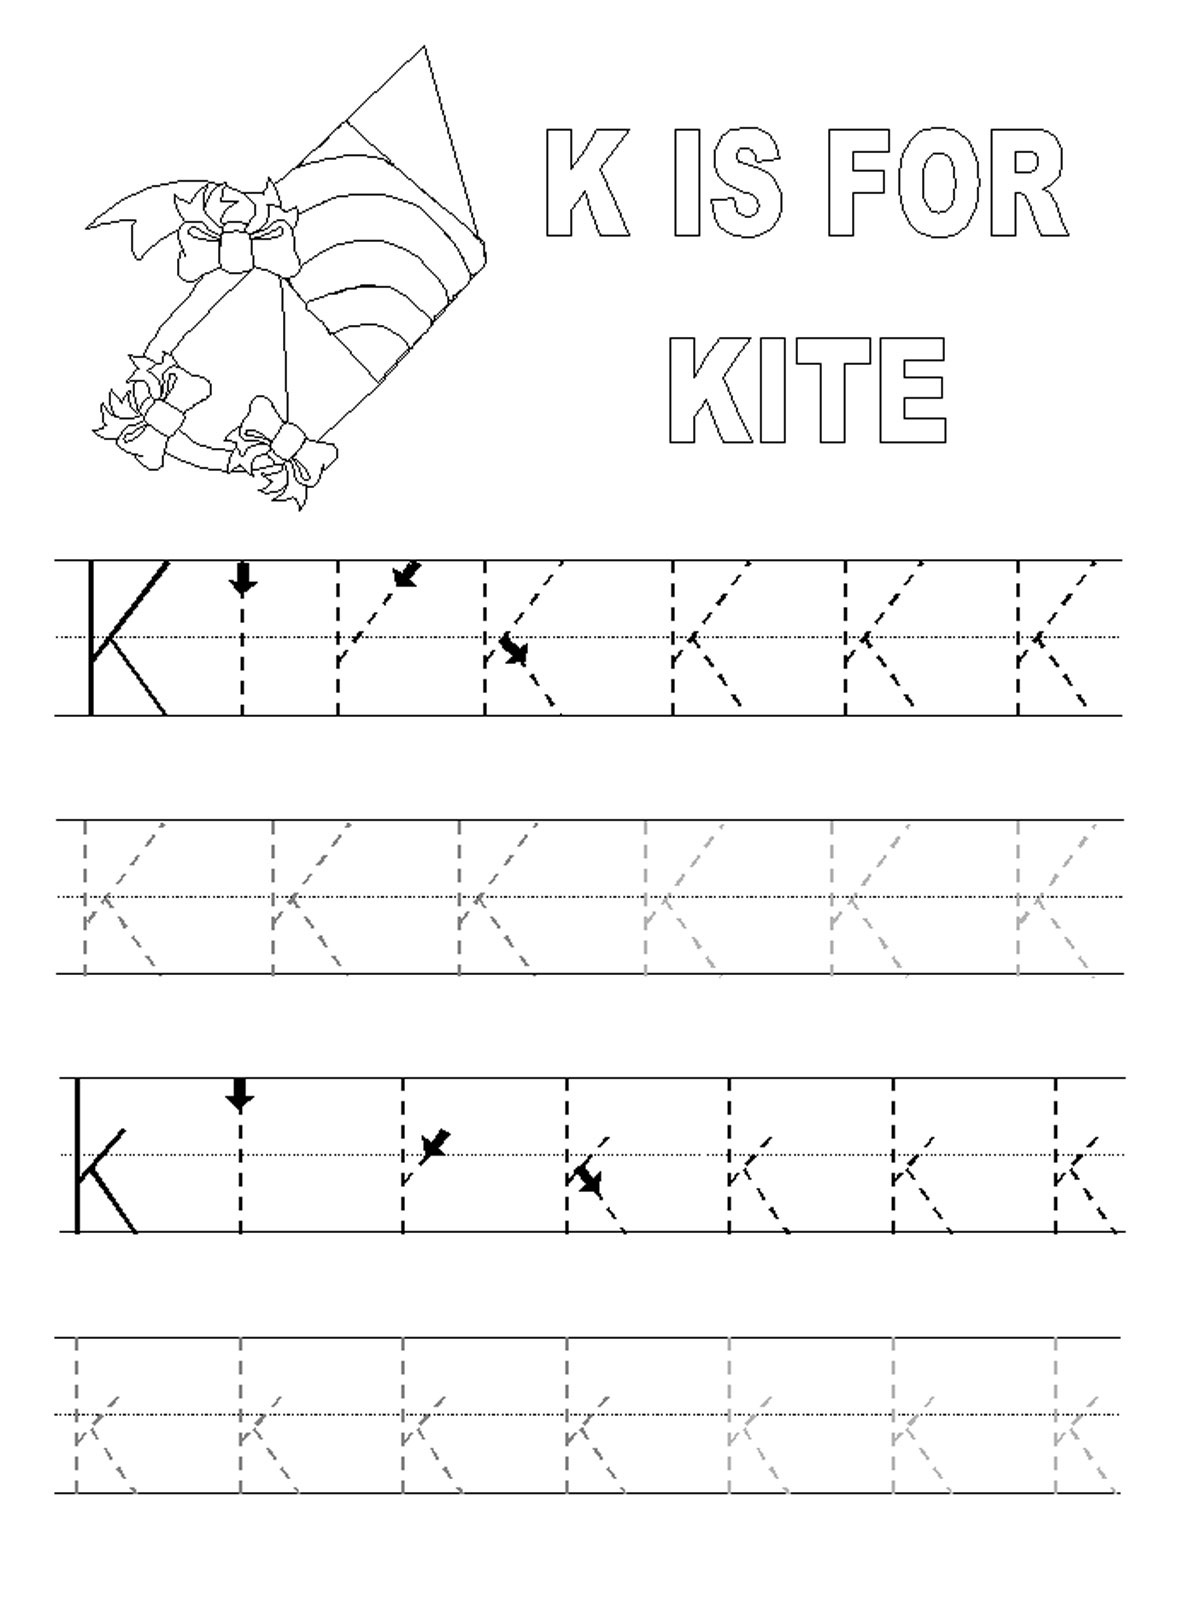 trace-the-alphabet-k-letter